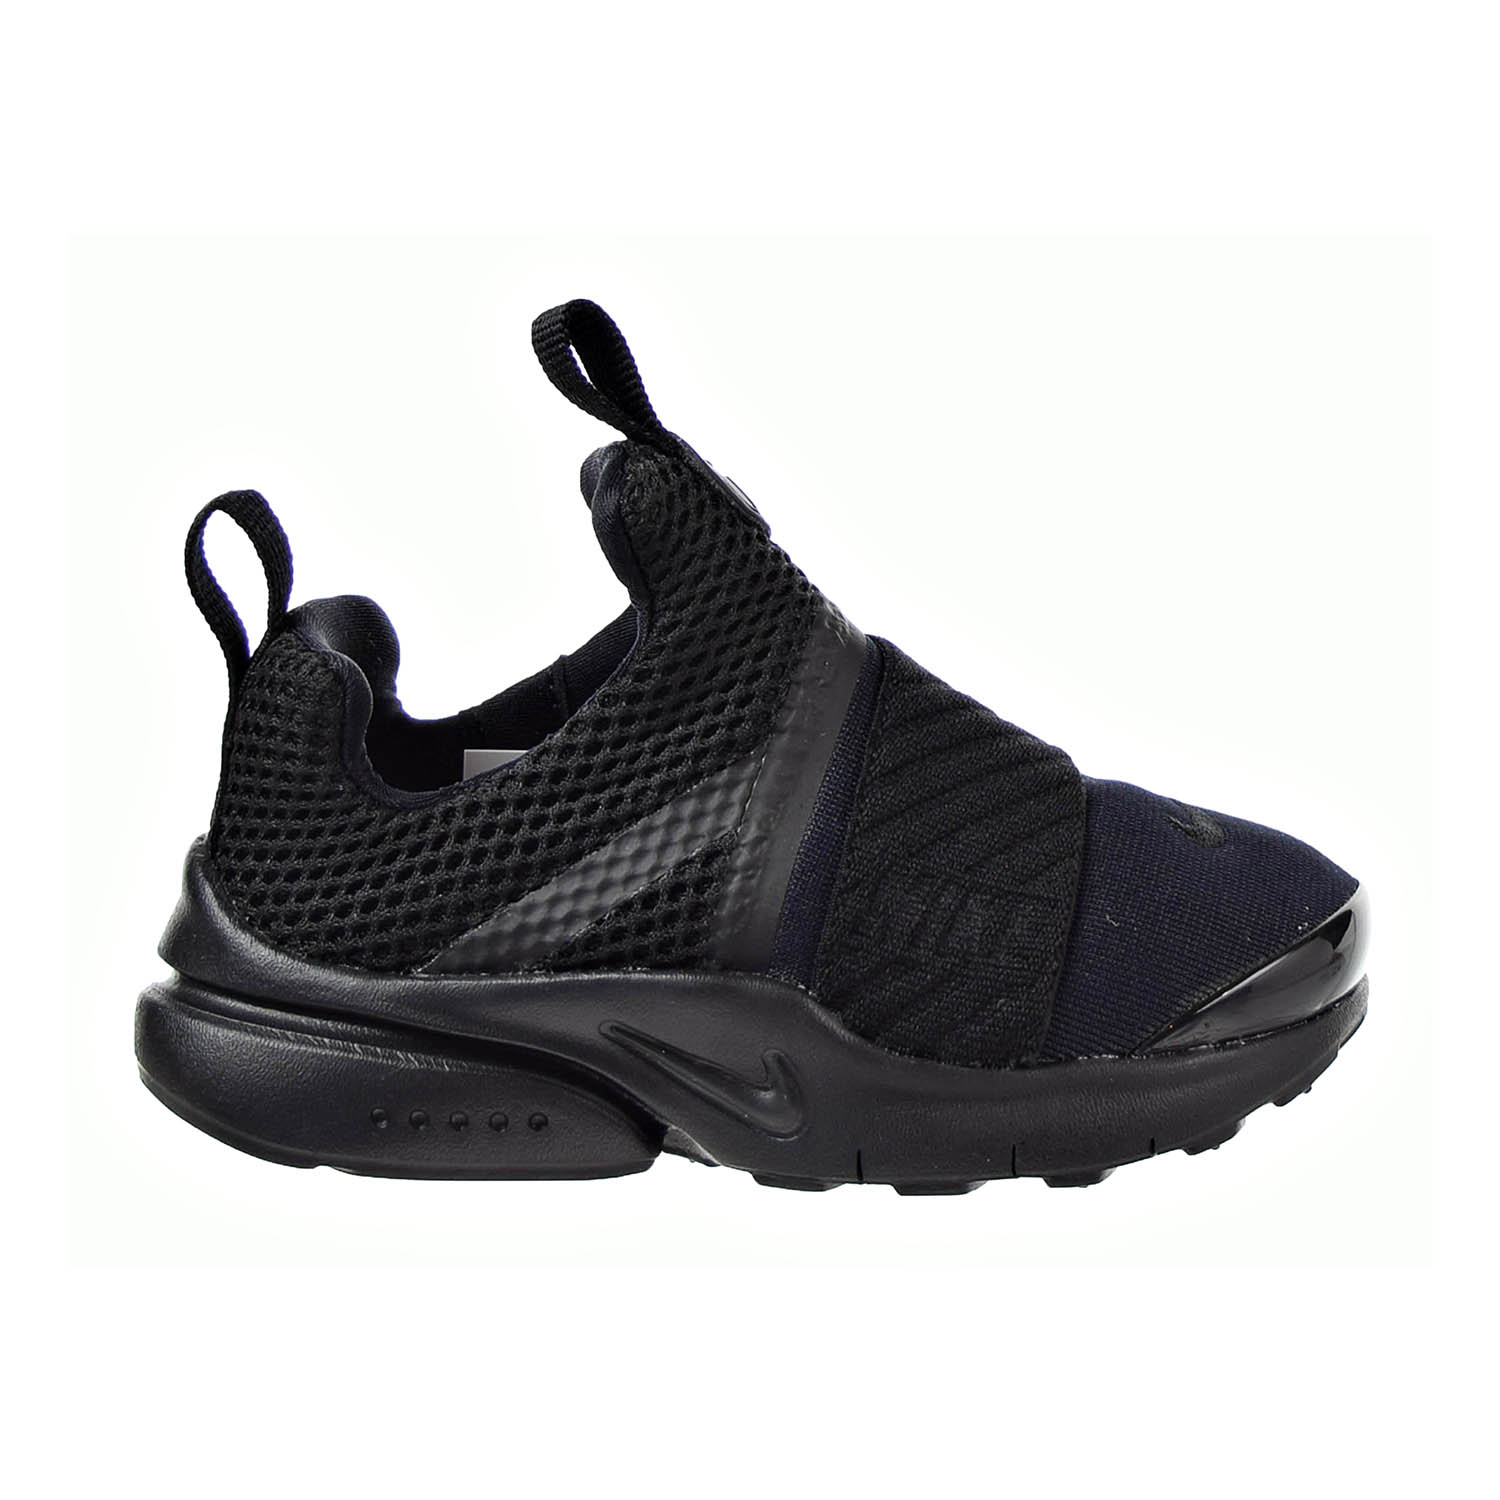 Nike Presto Extreme Toddlers' Shoes